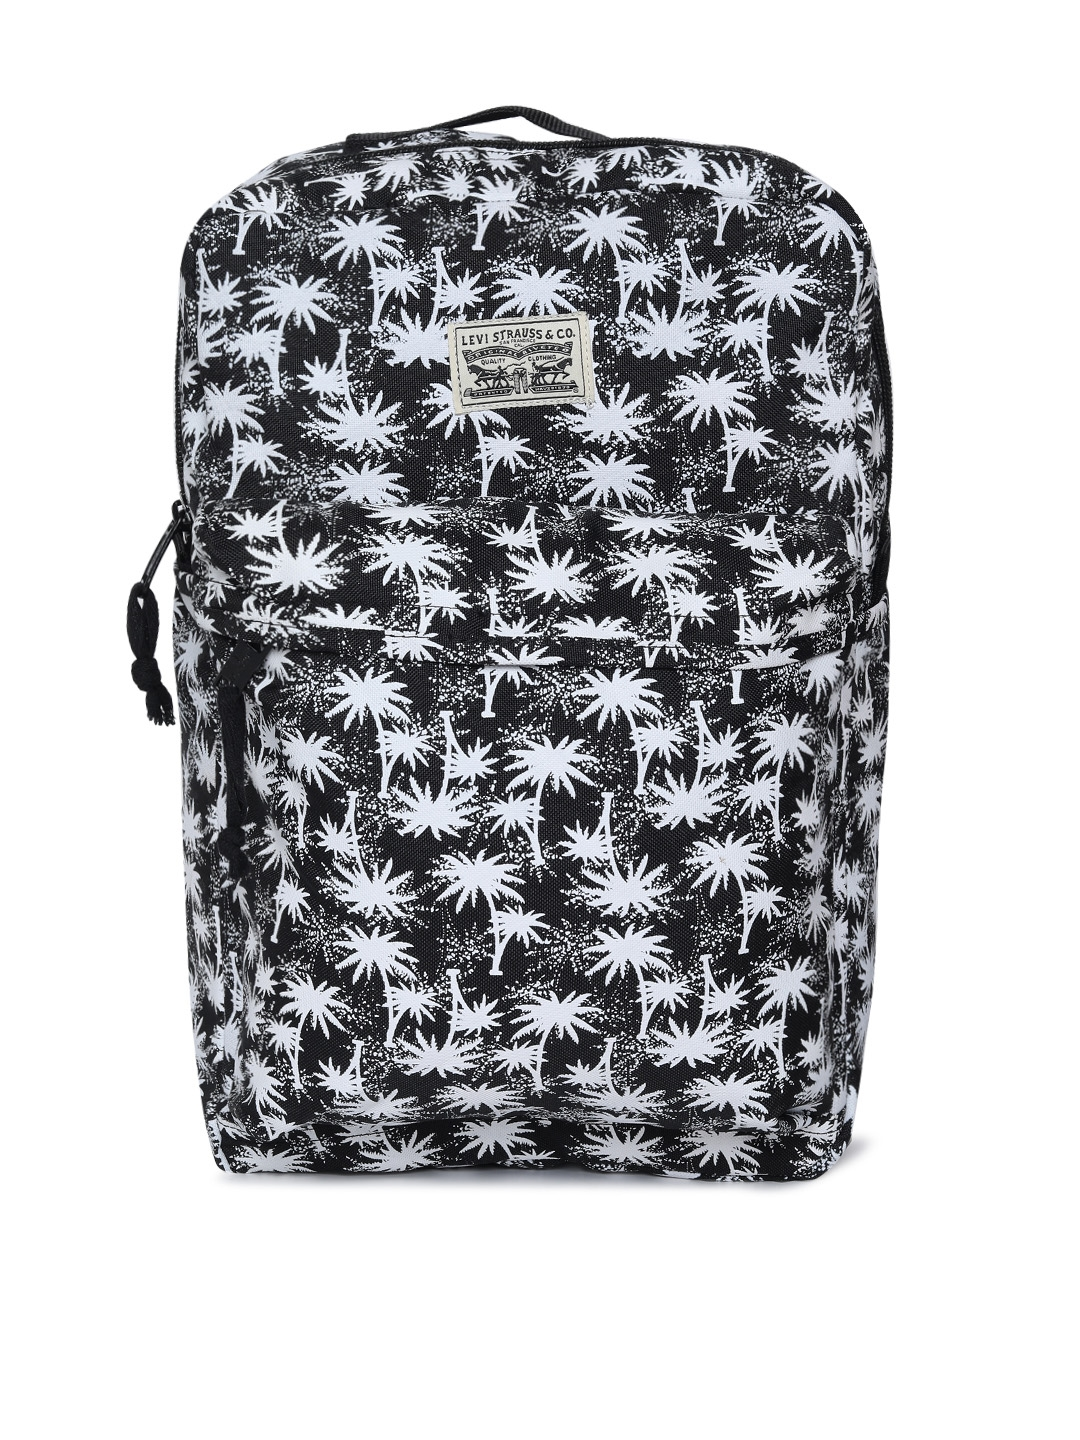 Levis Unisex Black   White Printed L PACK Laptop Backpack